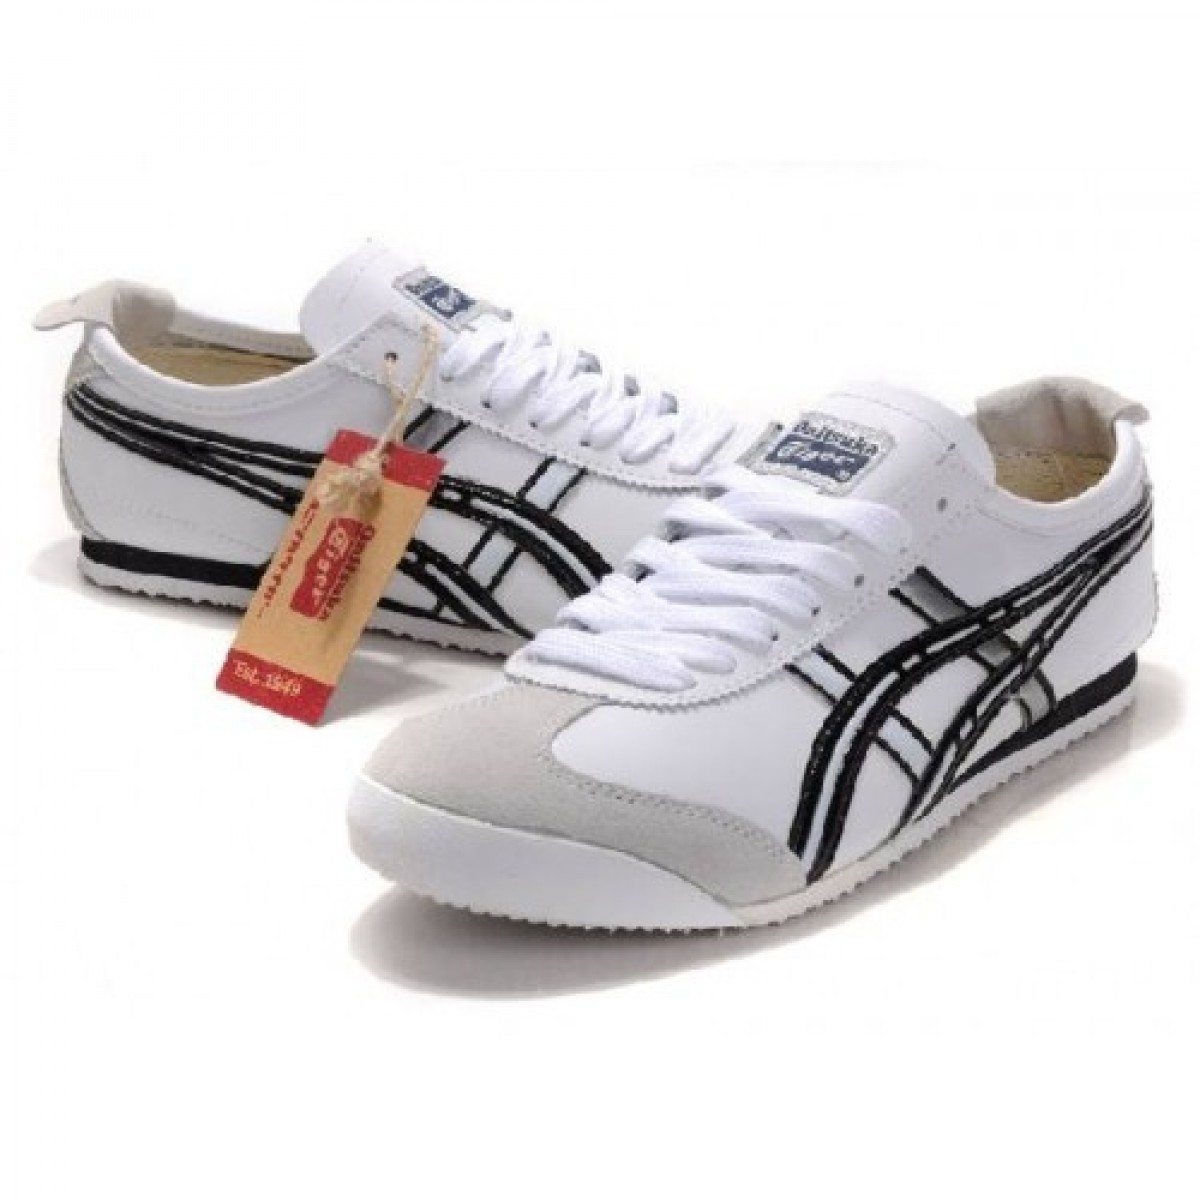 QD5316 Soldes Asics Onitsuka Tiger Mexico 66 Chaussures Blanc Noir 97602737 Pas Cher